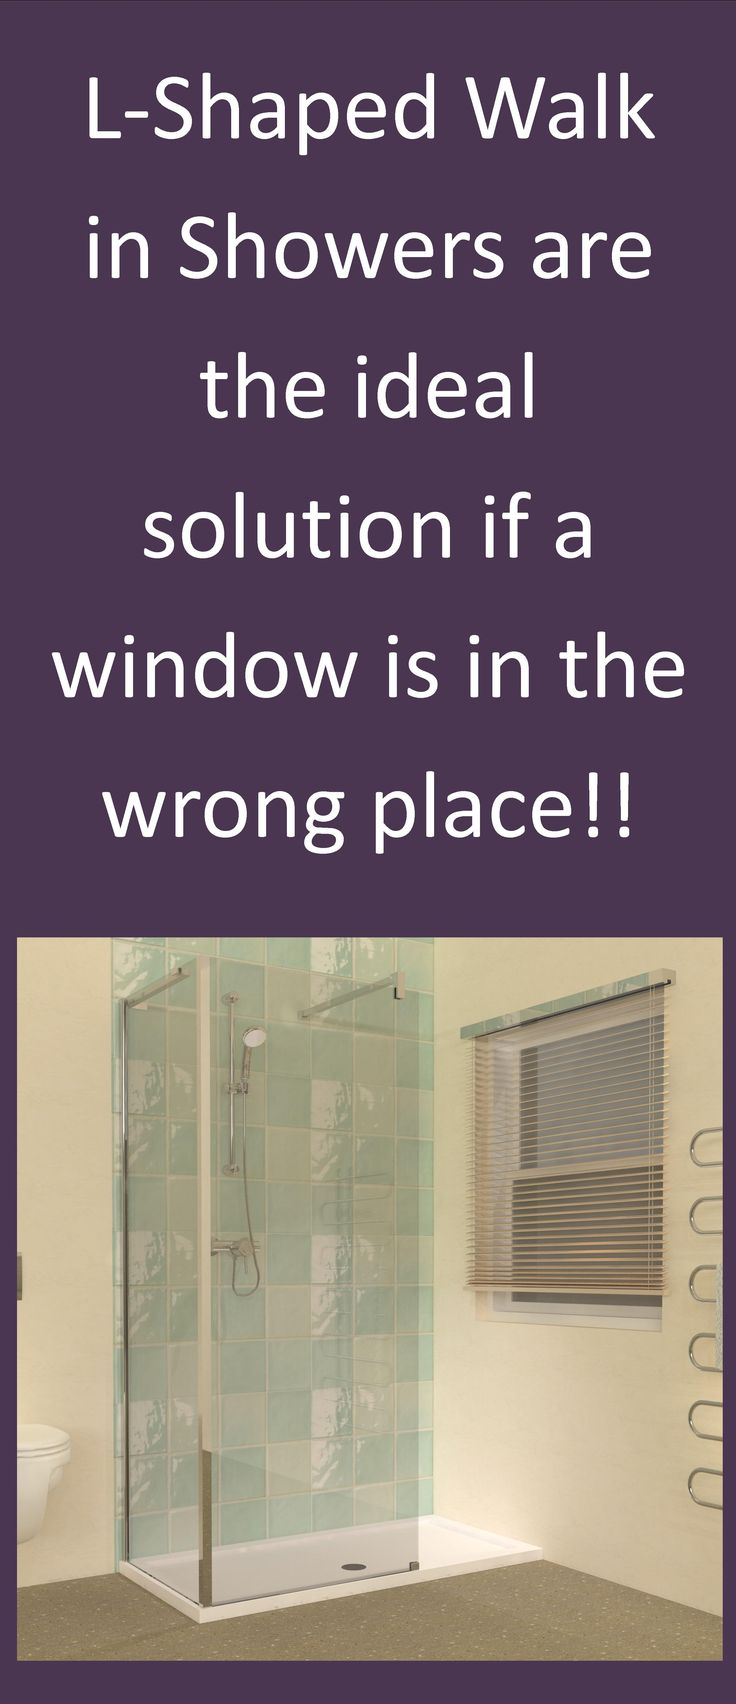 Does the position of your Bathroom window stop you from fitting a Shower Enclosure? The solution may be an L-Shaped Walk-in Shower design. Unishower offers a range of sizes at http://www.unishower.co.uk/walk-in-shower-enclosures-with-tray.html with prices starting from £595